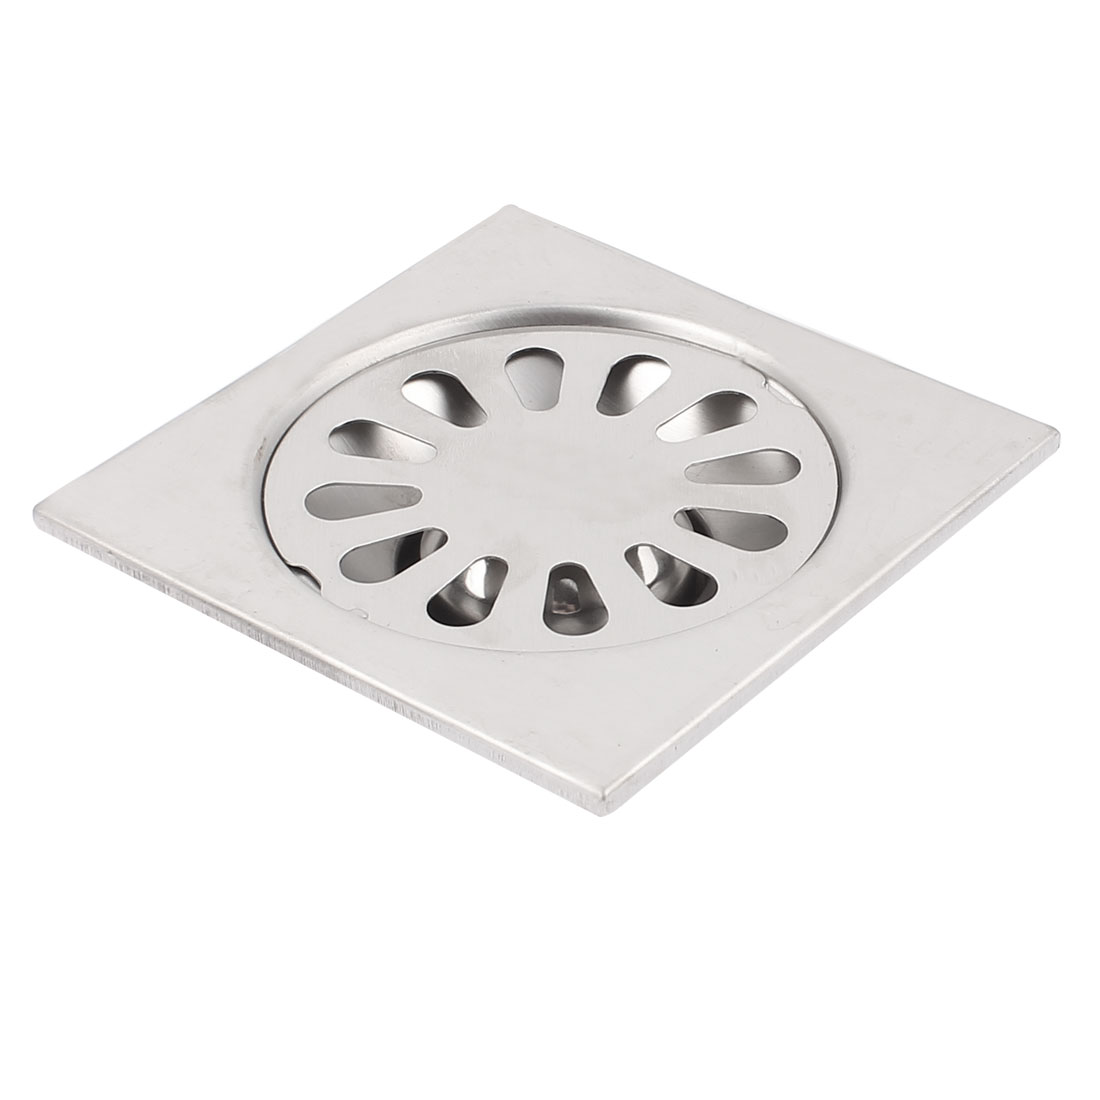 Kitchen Bathroom Shower Stainless Steel Square Shape Sink Floor Drain Hole Cover Waste Grate Strainer